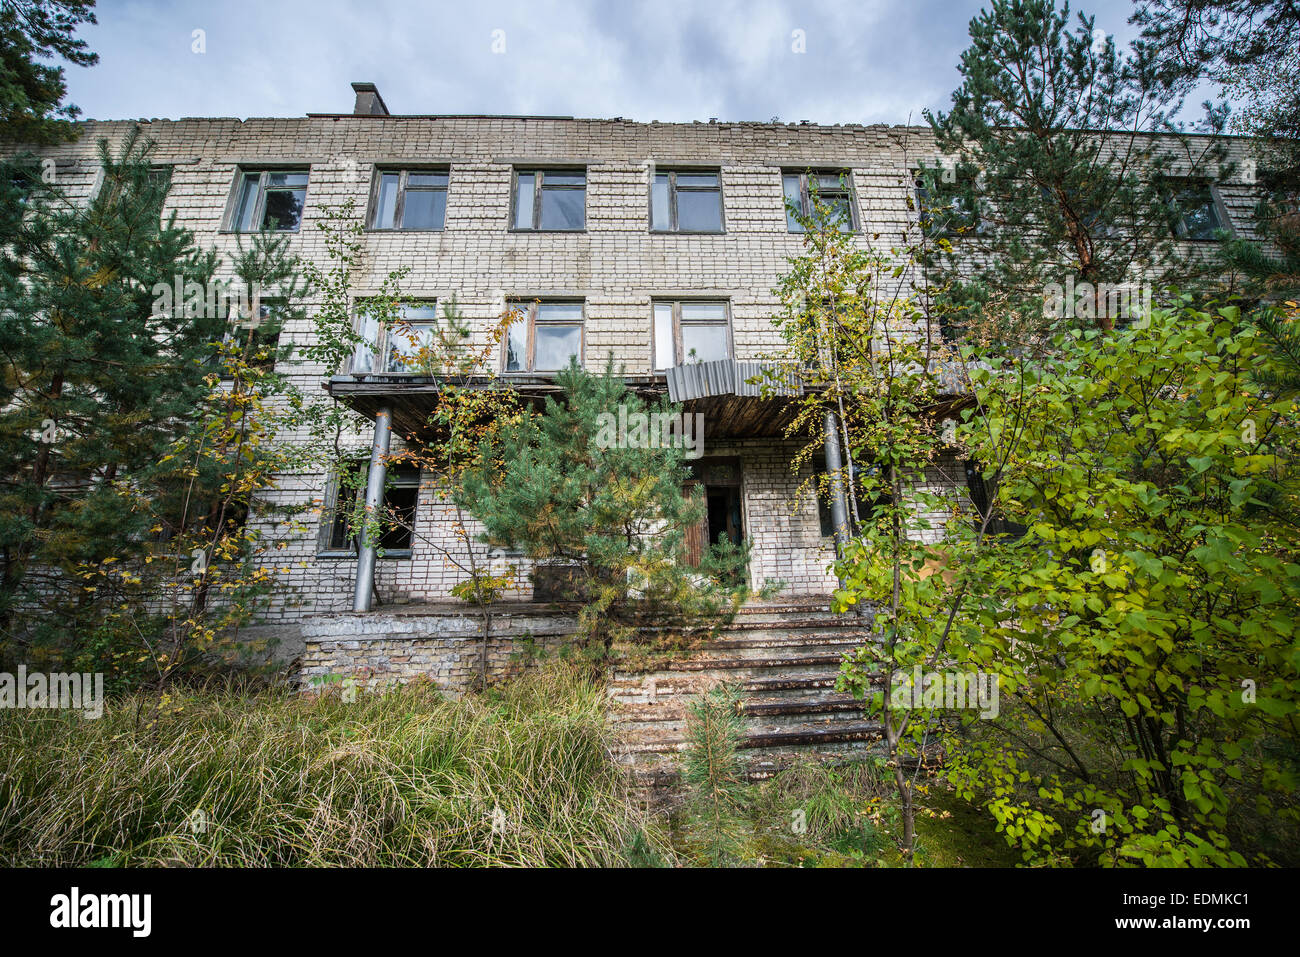 one of buildings of Chernobyl-2 military base next to Duga-3 Soviet radar system, Chernobyl Exclusion Zone, Ukraine - Stock Image